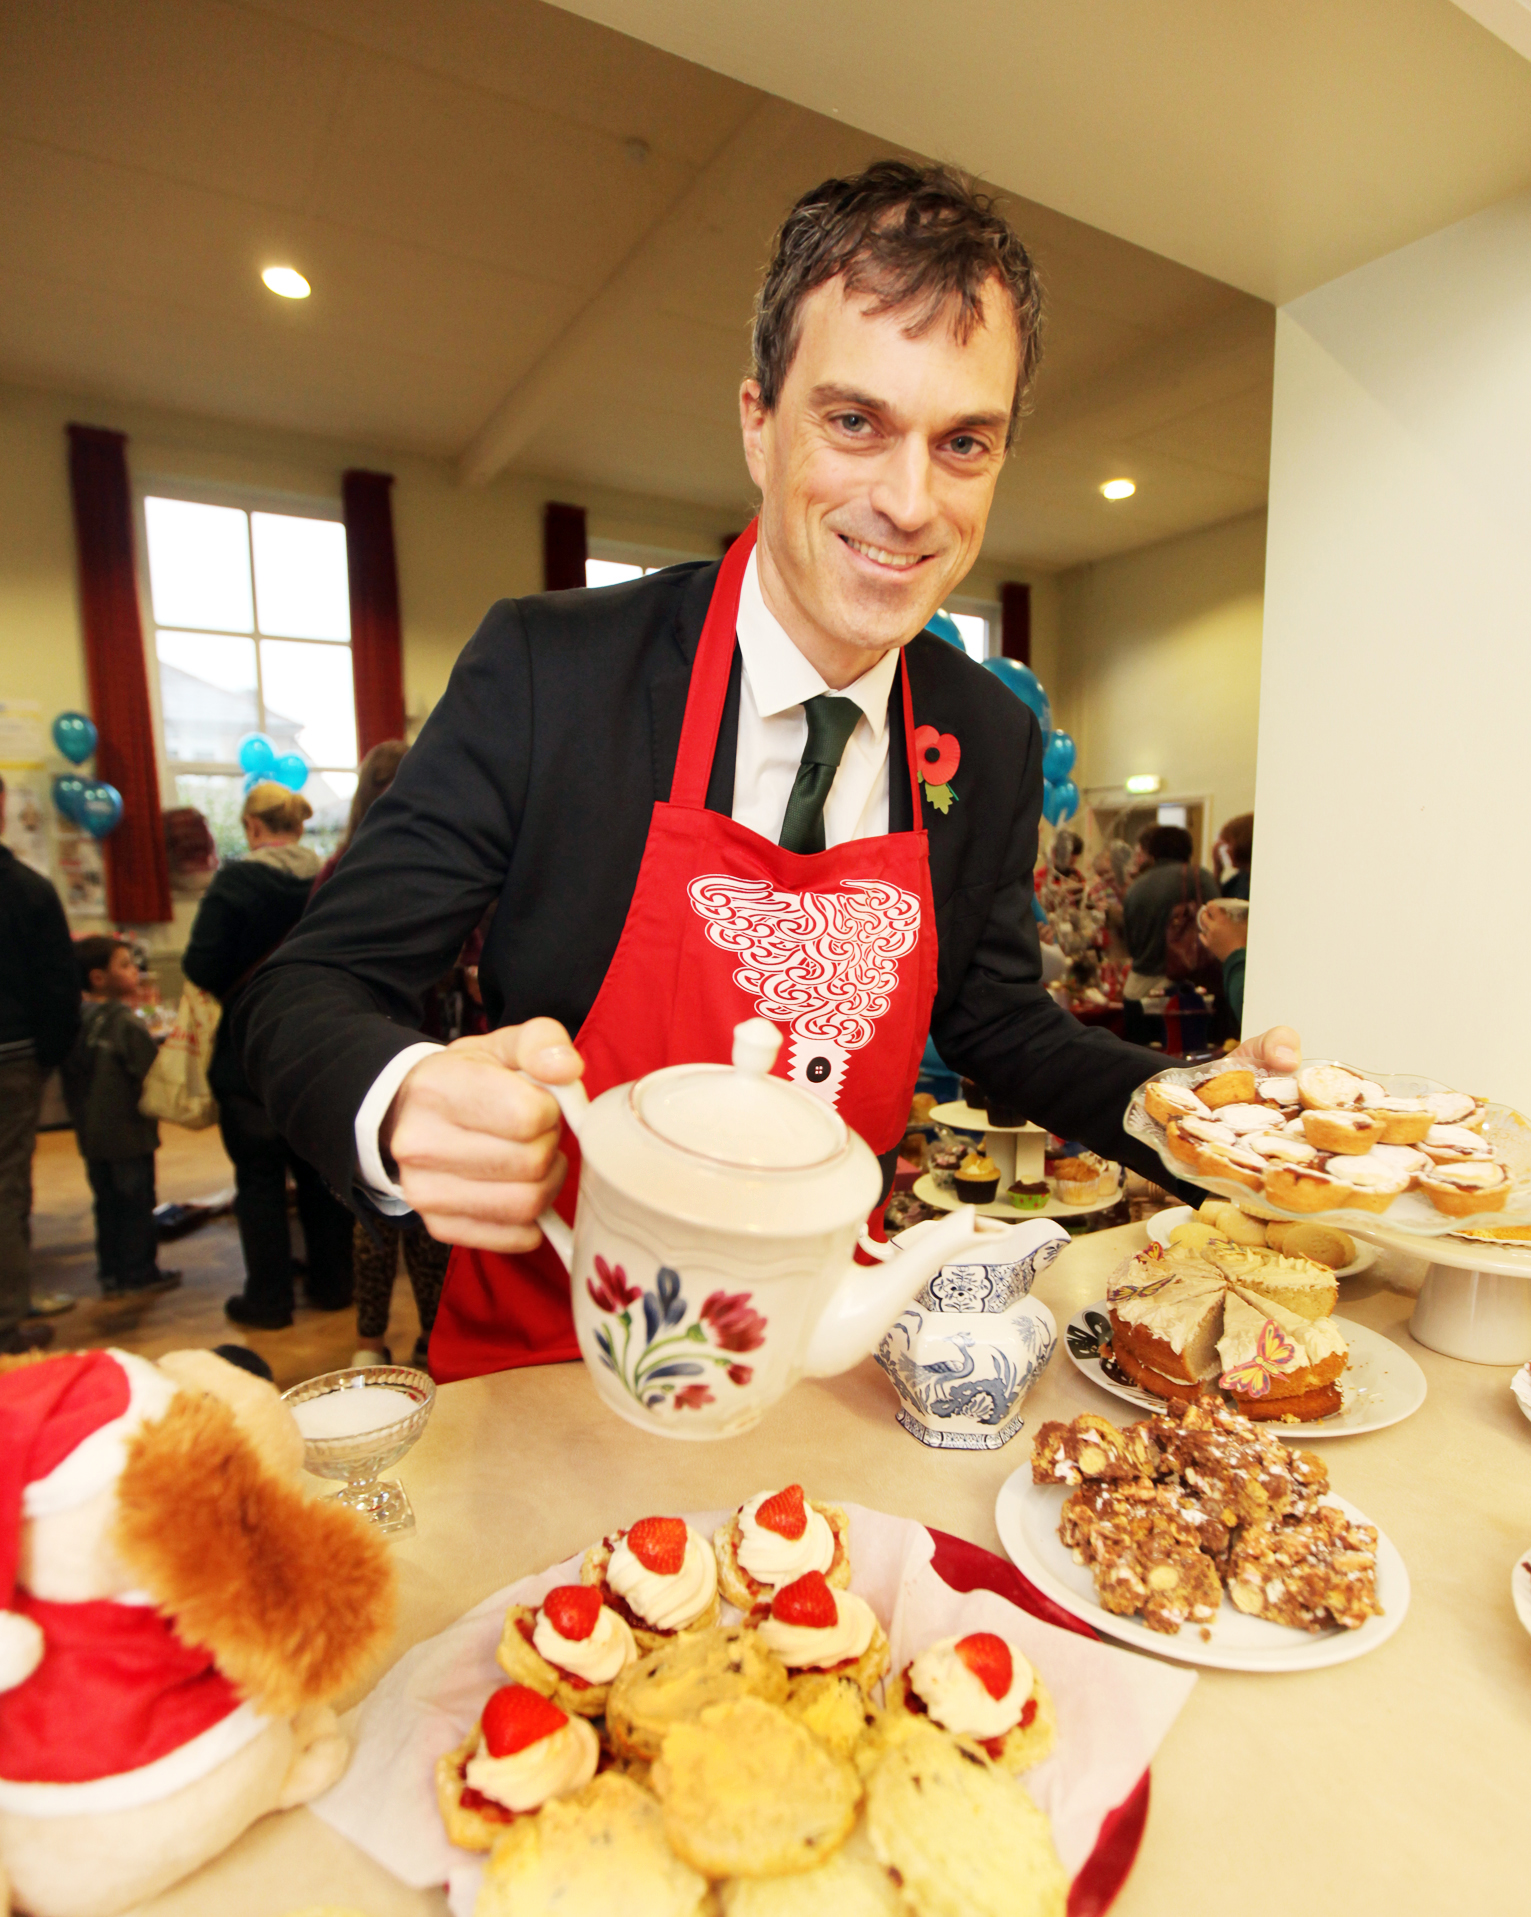 Jack's Journey Christmas Market raises £4,000 for brain tumour charity